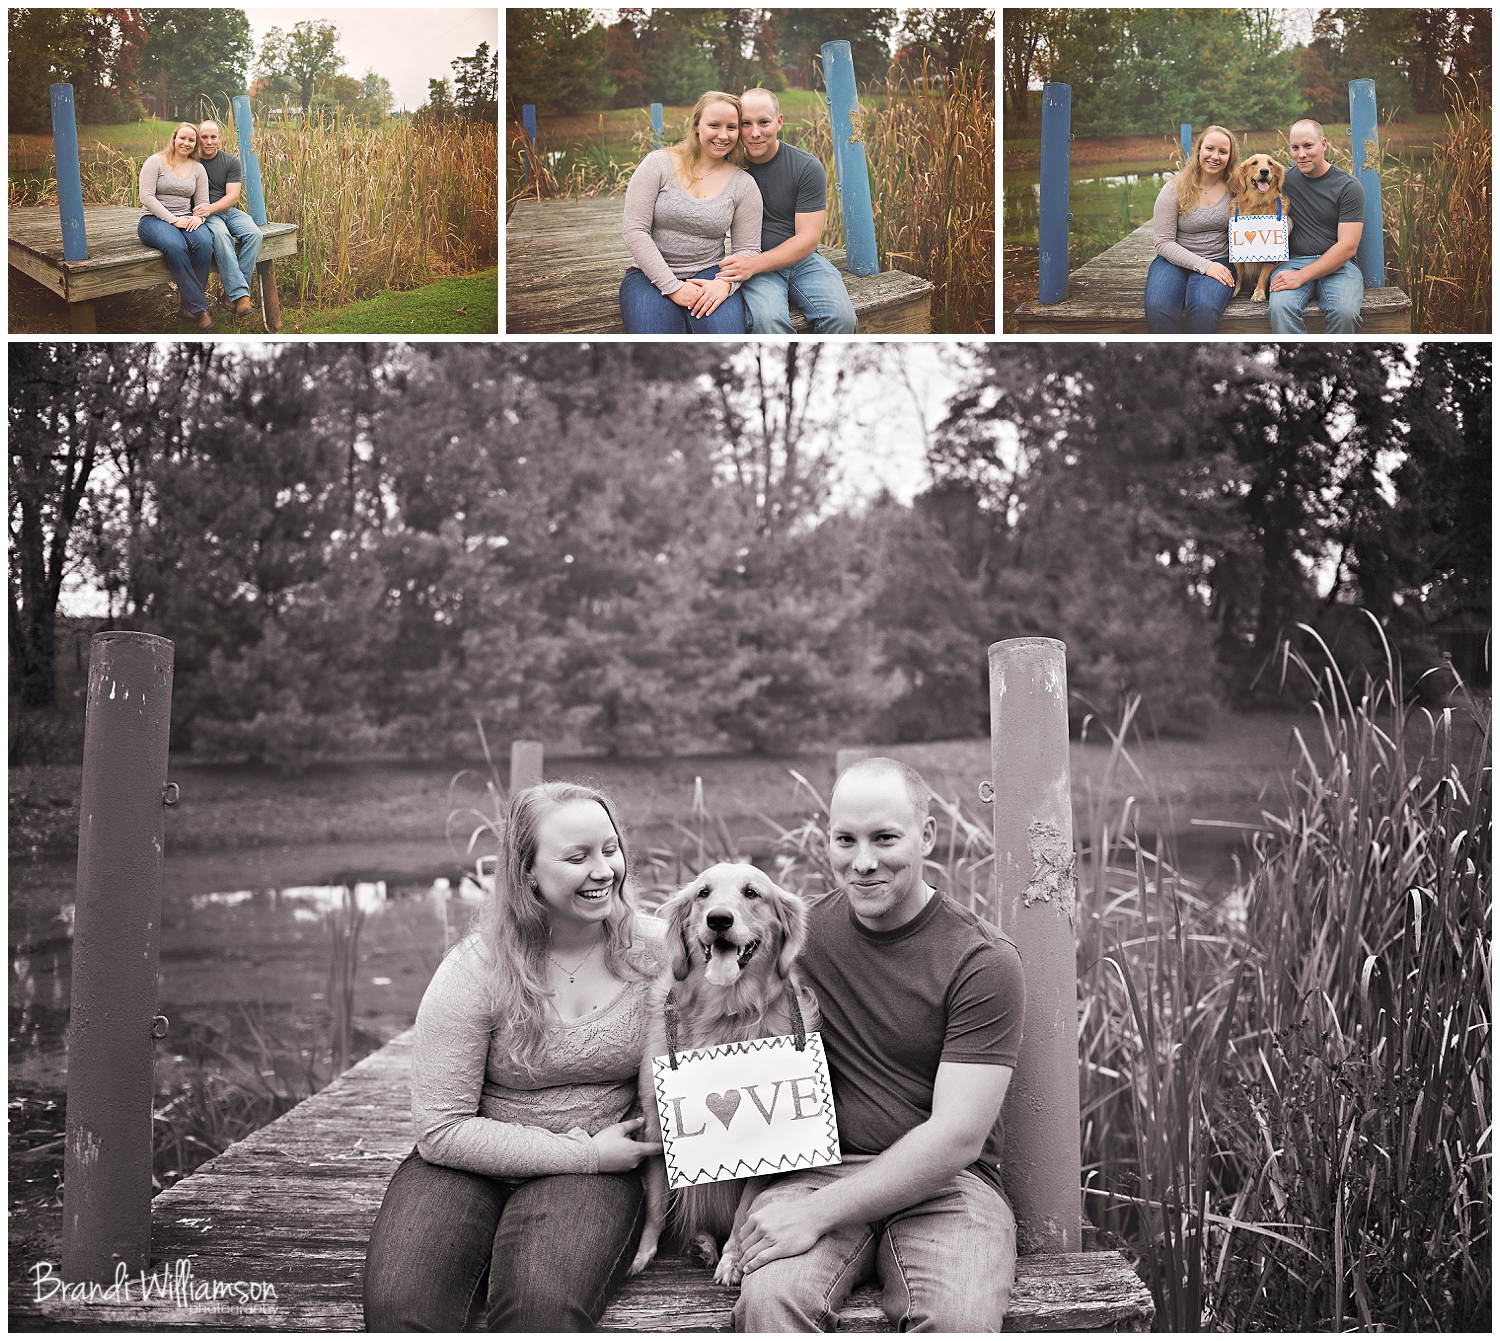 © Brandi Williamson Photography | Dover, New Philadelphia OH engagement photographer | www.brandiwilliamsonphotography.com